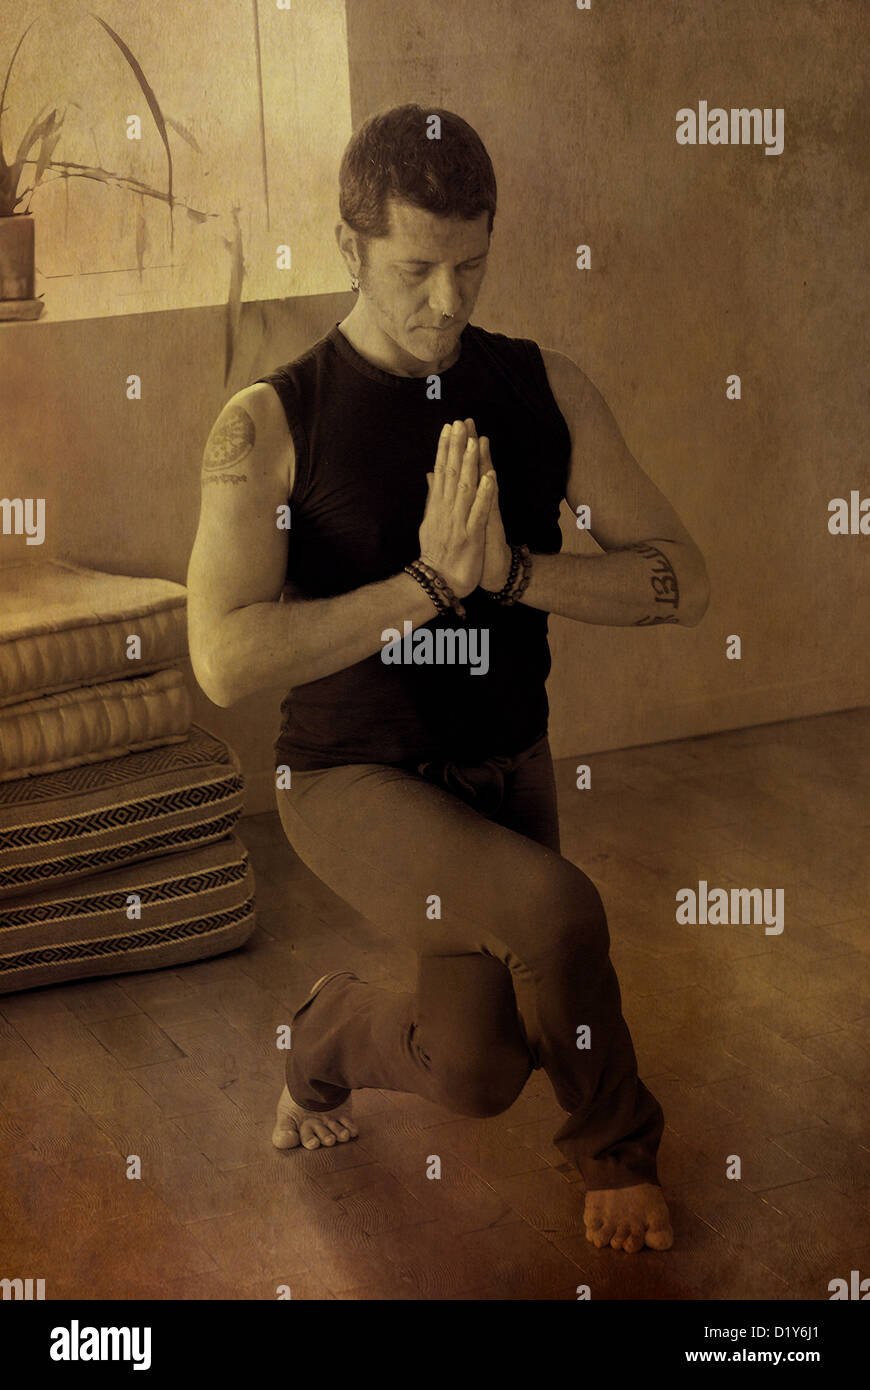 Man in a deep eagle leg squat holding his hands in prayer